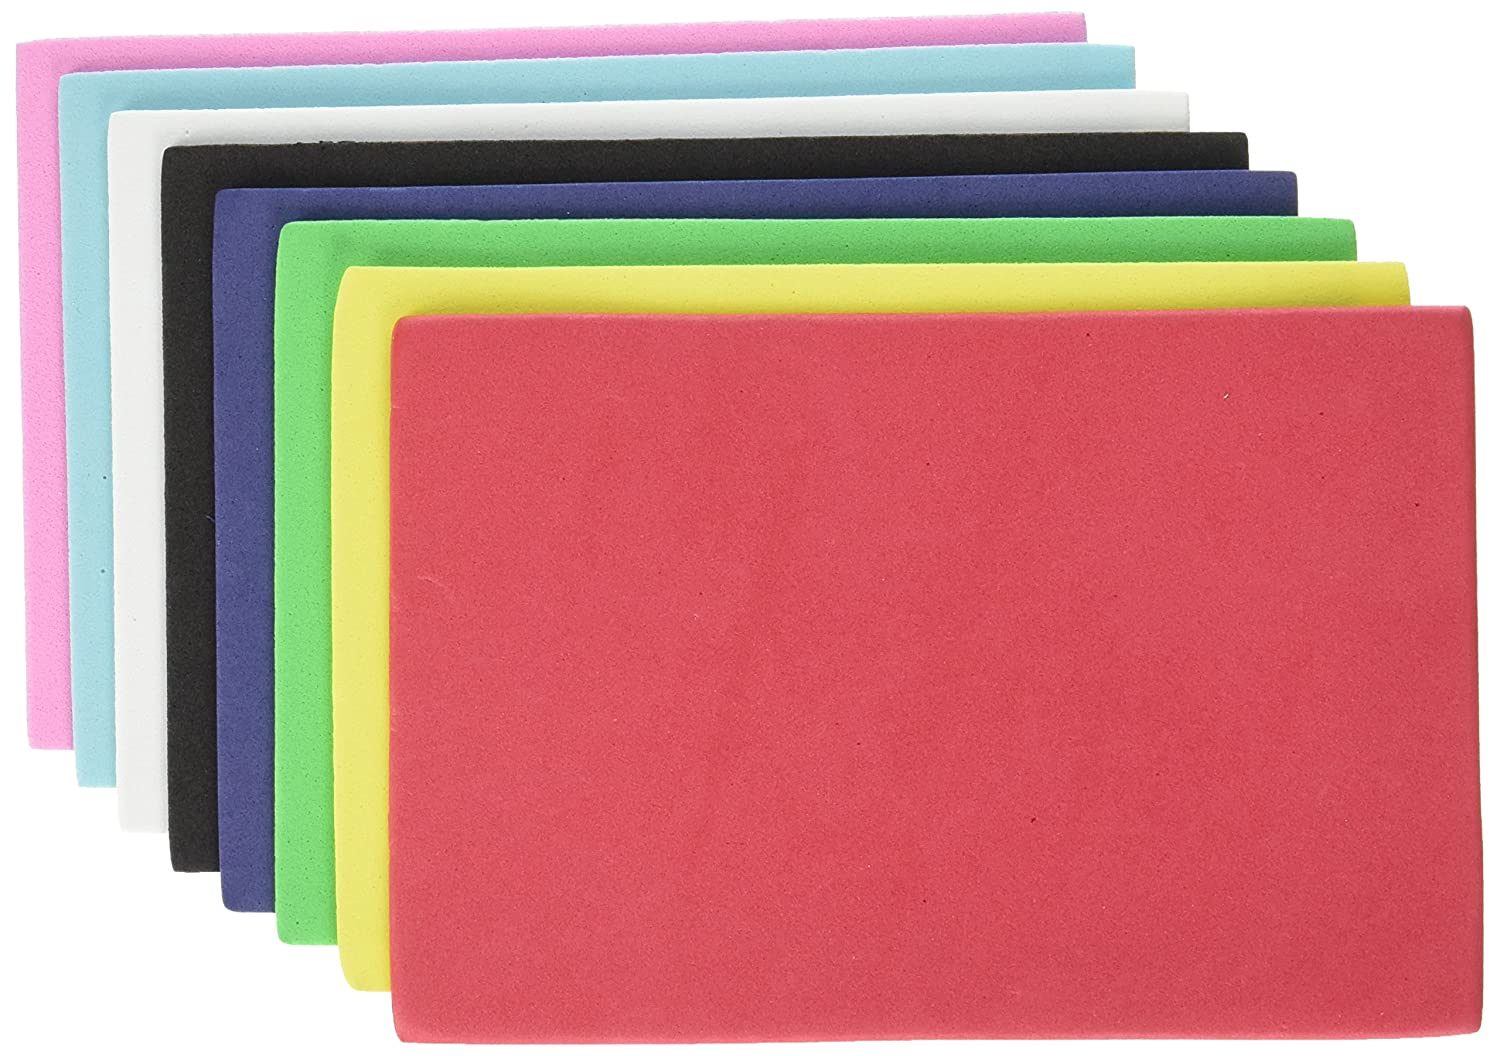 Multicraft Imports GC044A Foam Sheets 1.5mm 4X6 30//Pkg-Primary Assortment